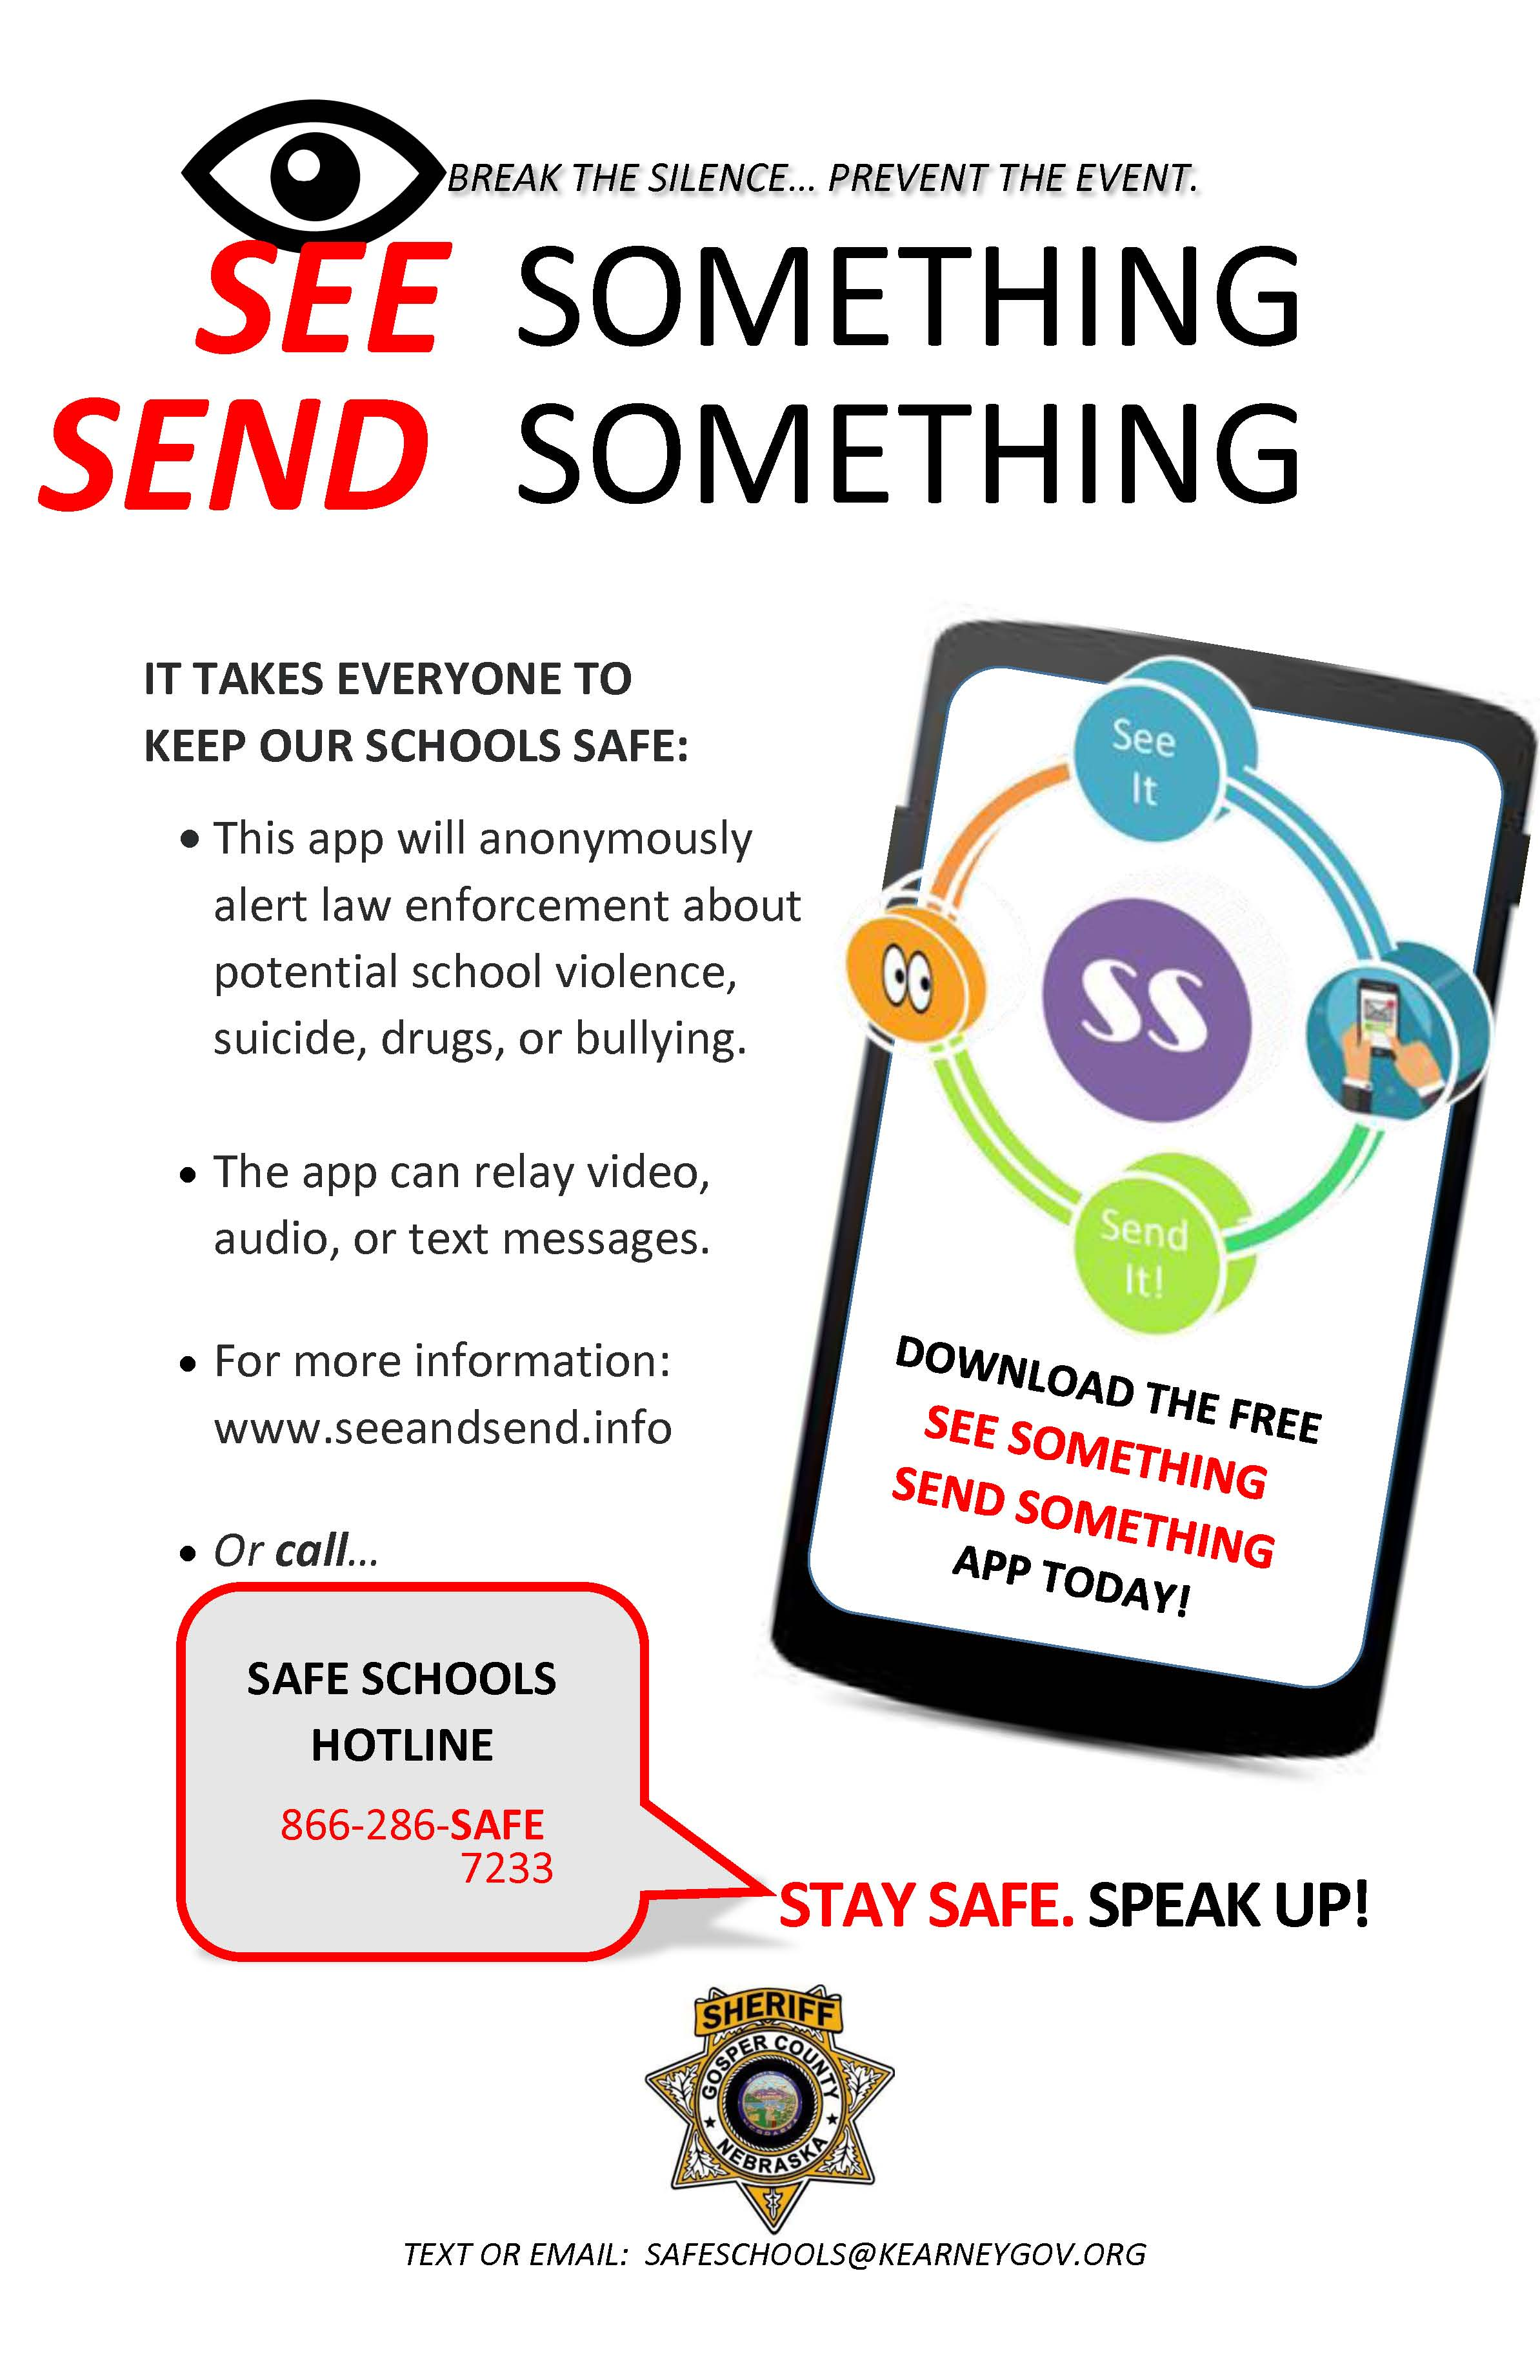 See Something, Send Something - A new app from the Gosper County Sheriff's Office